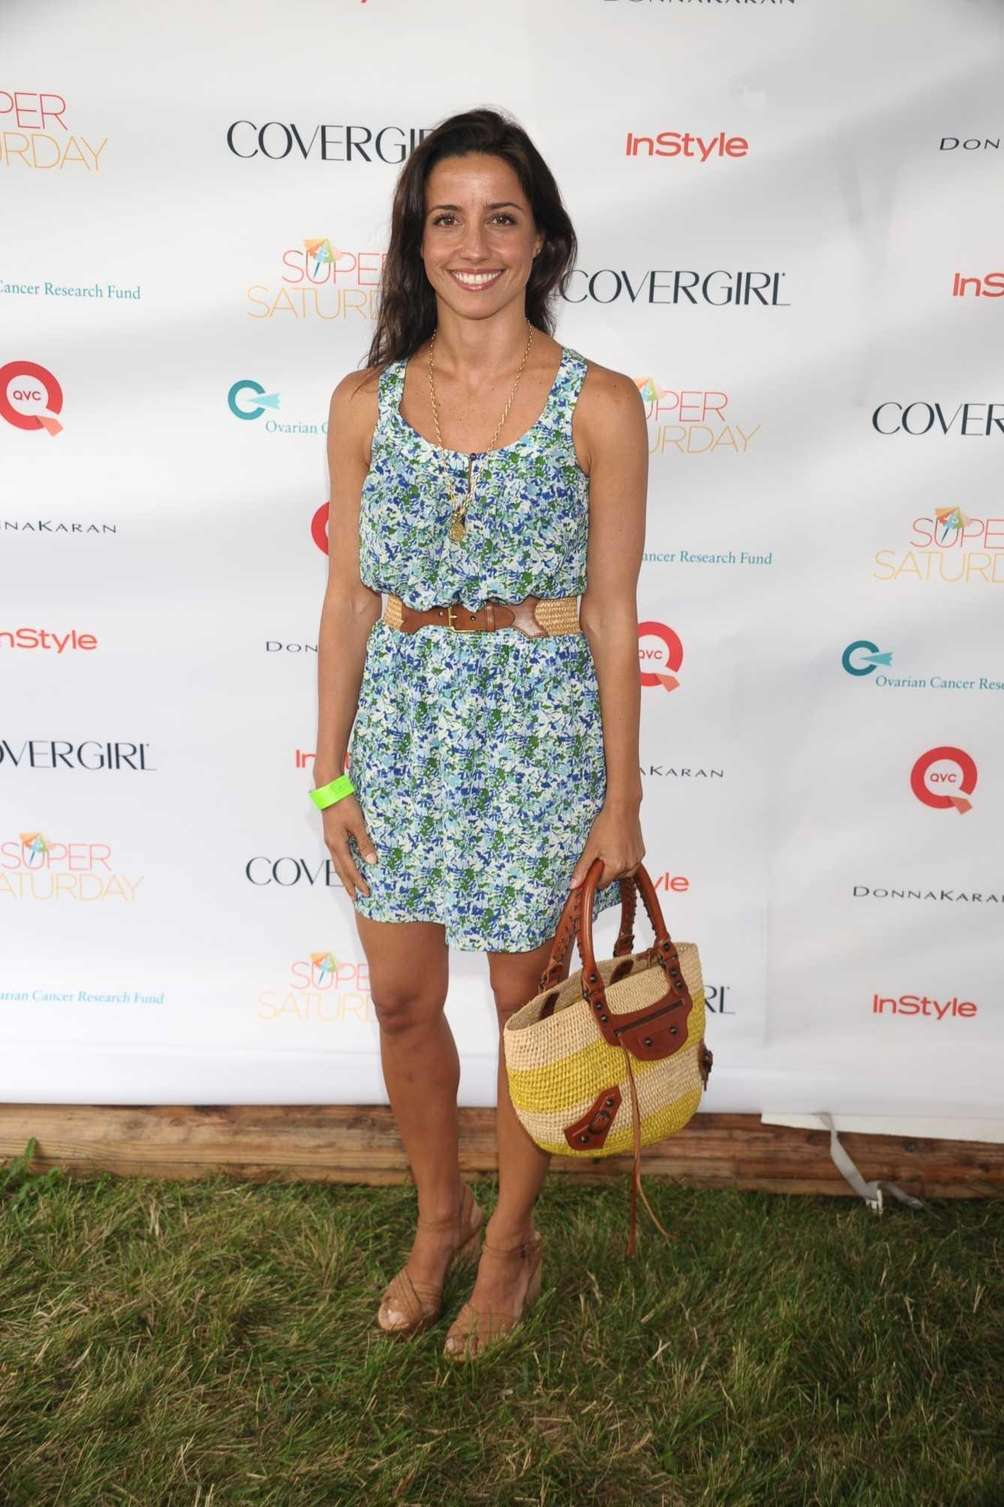 Shoshana Lonstein Gruss attends Super Saturday 15 to